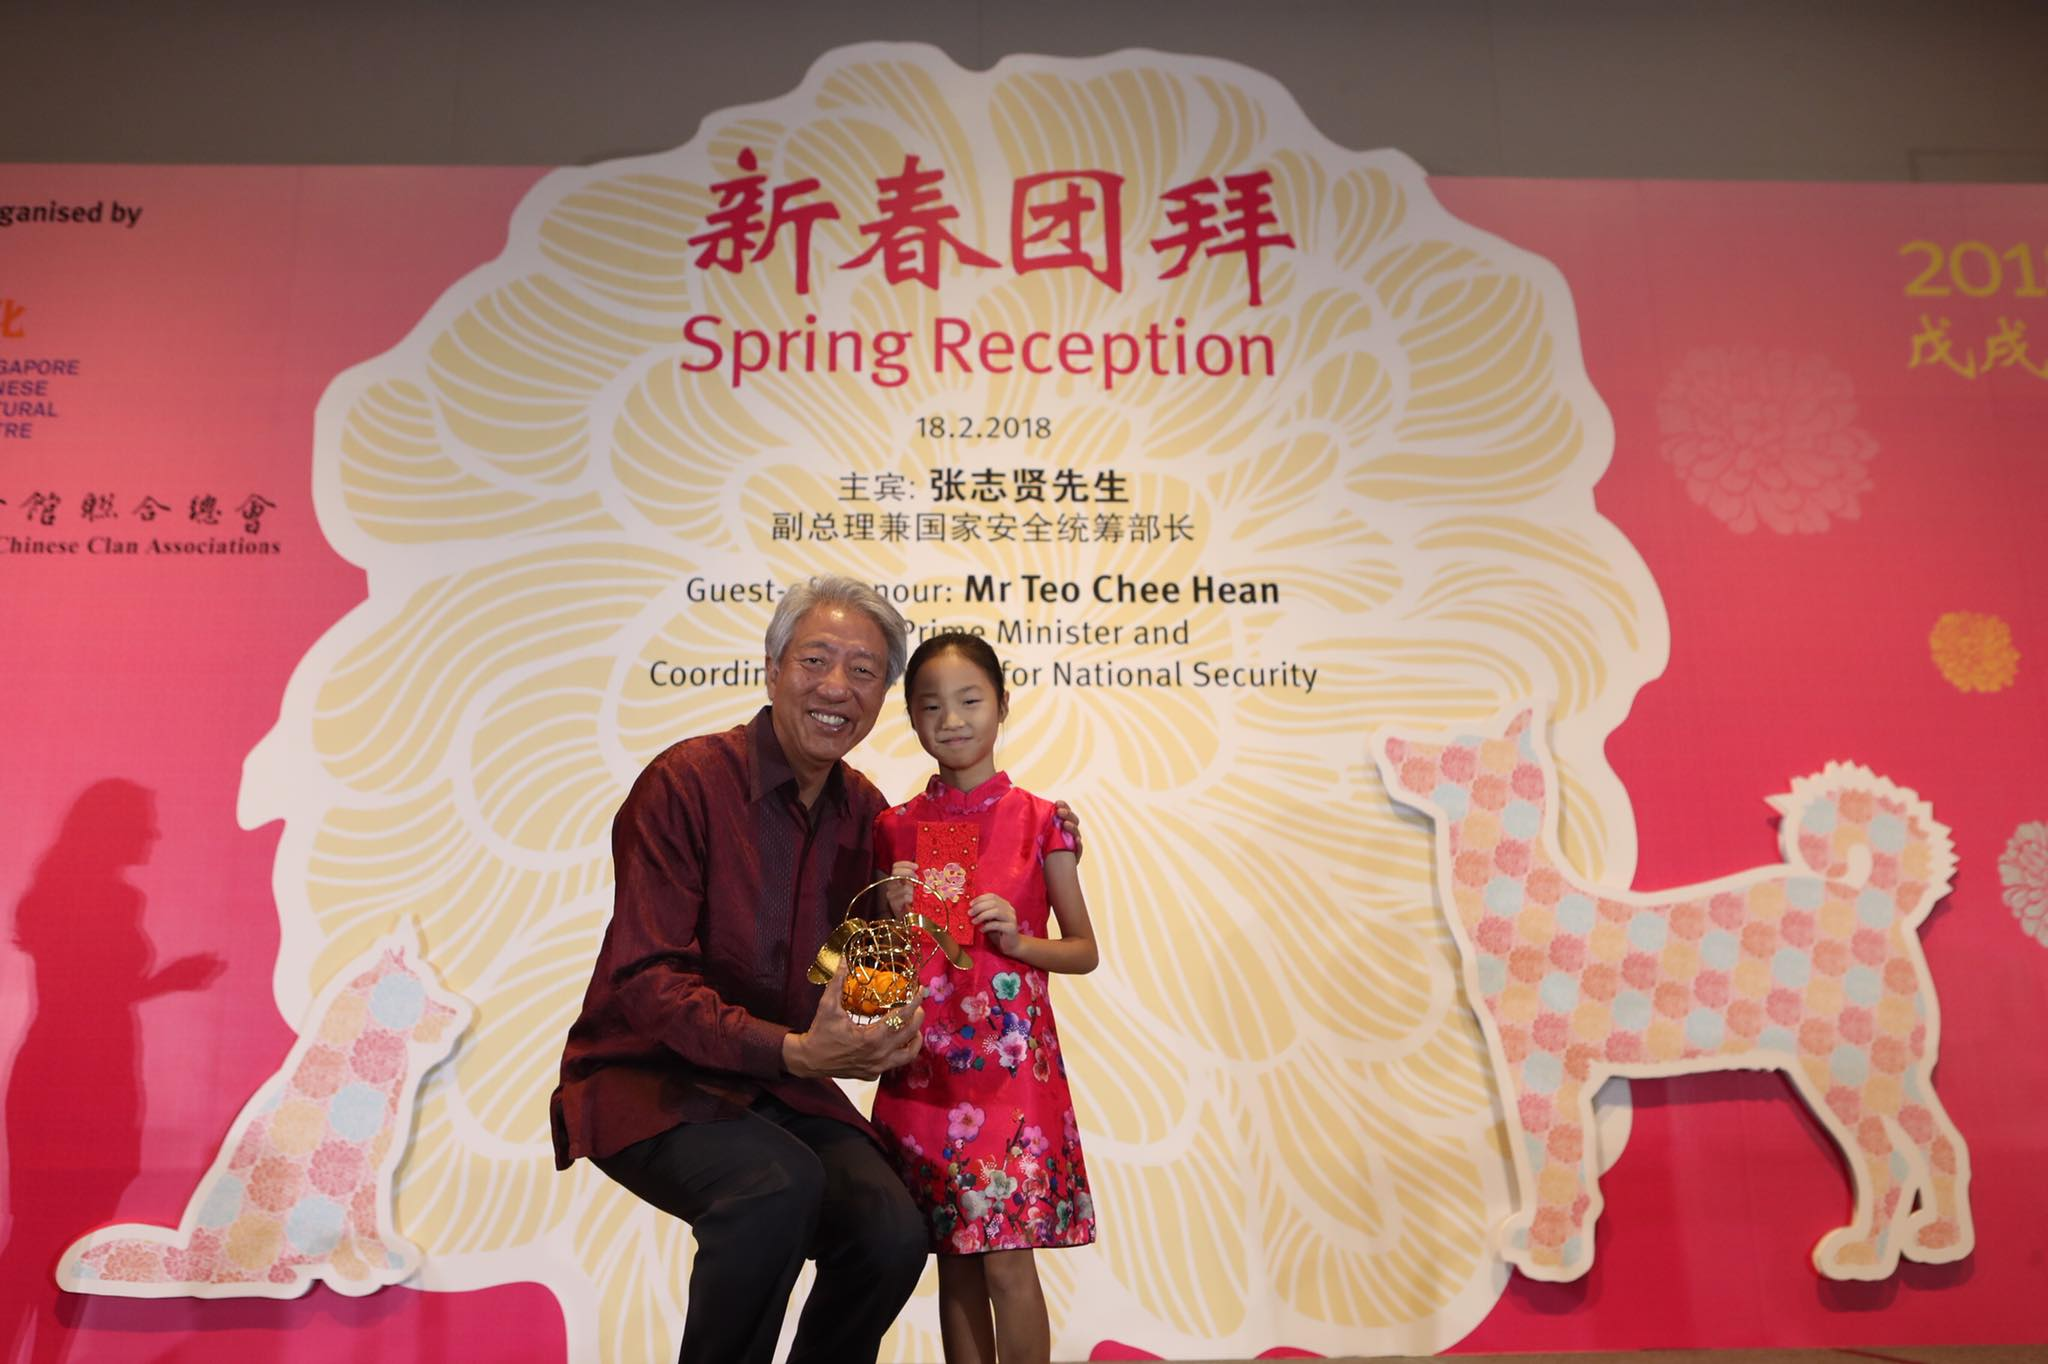 9-year old Elaine You from Qifa Primary presenting a basket of mandarin oranges to Deputy Prime Minister of Singapore Teo Chee Hean representing good wishes from Singapore Federation of Chinese Clan Associations and the Singapore Chinese Cultural Centre.